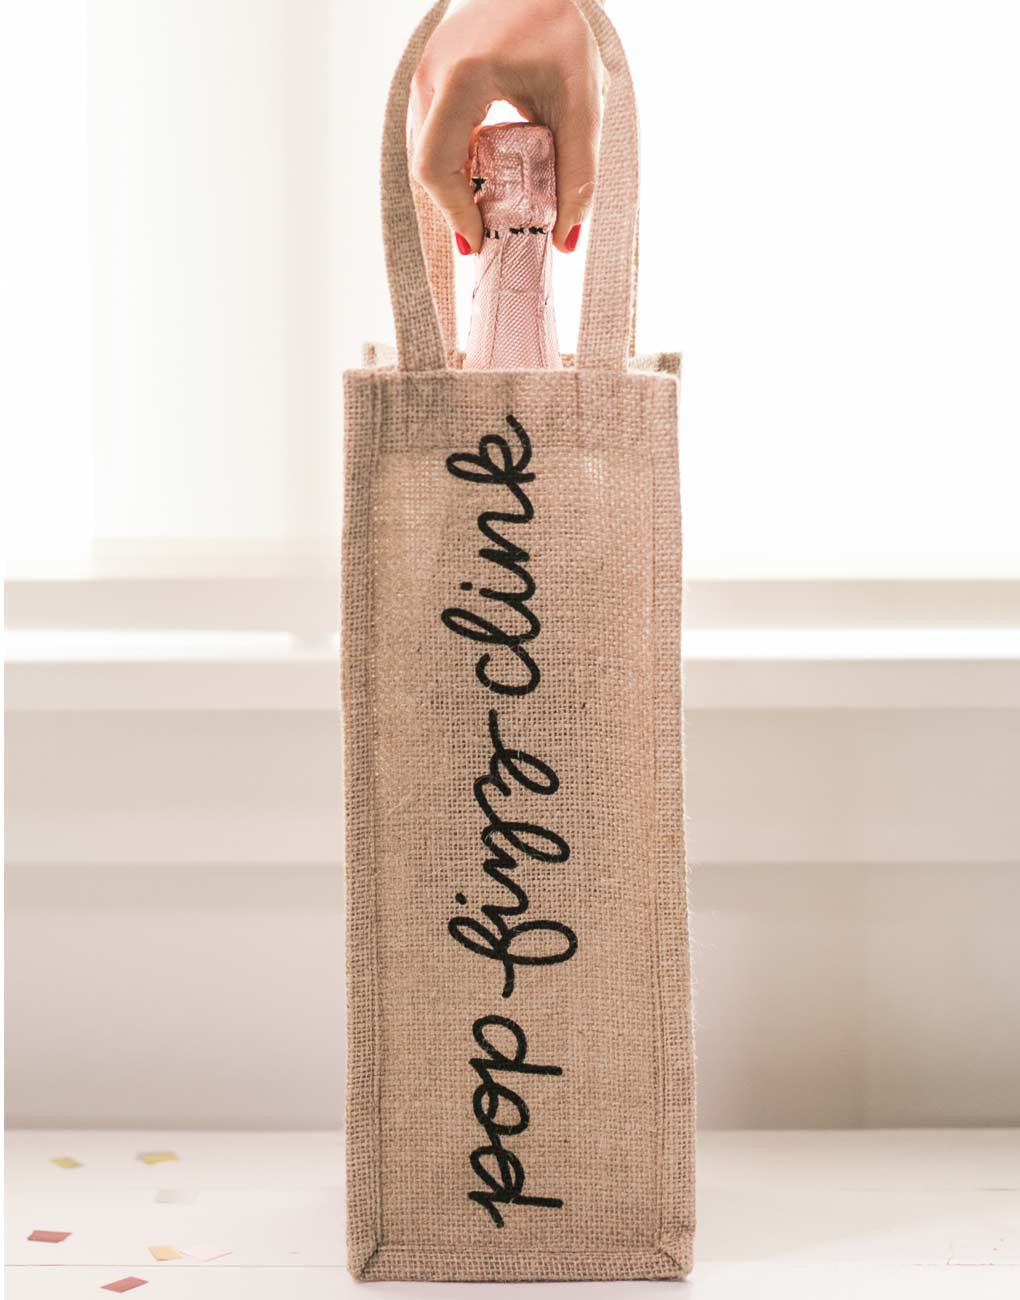 Pop Fizz Clink Reusable Wine Tote In Black Font With Bottle Inside | The Little Market